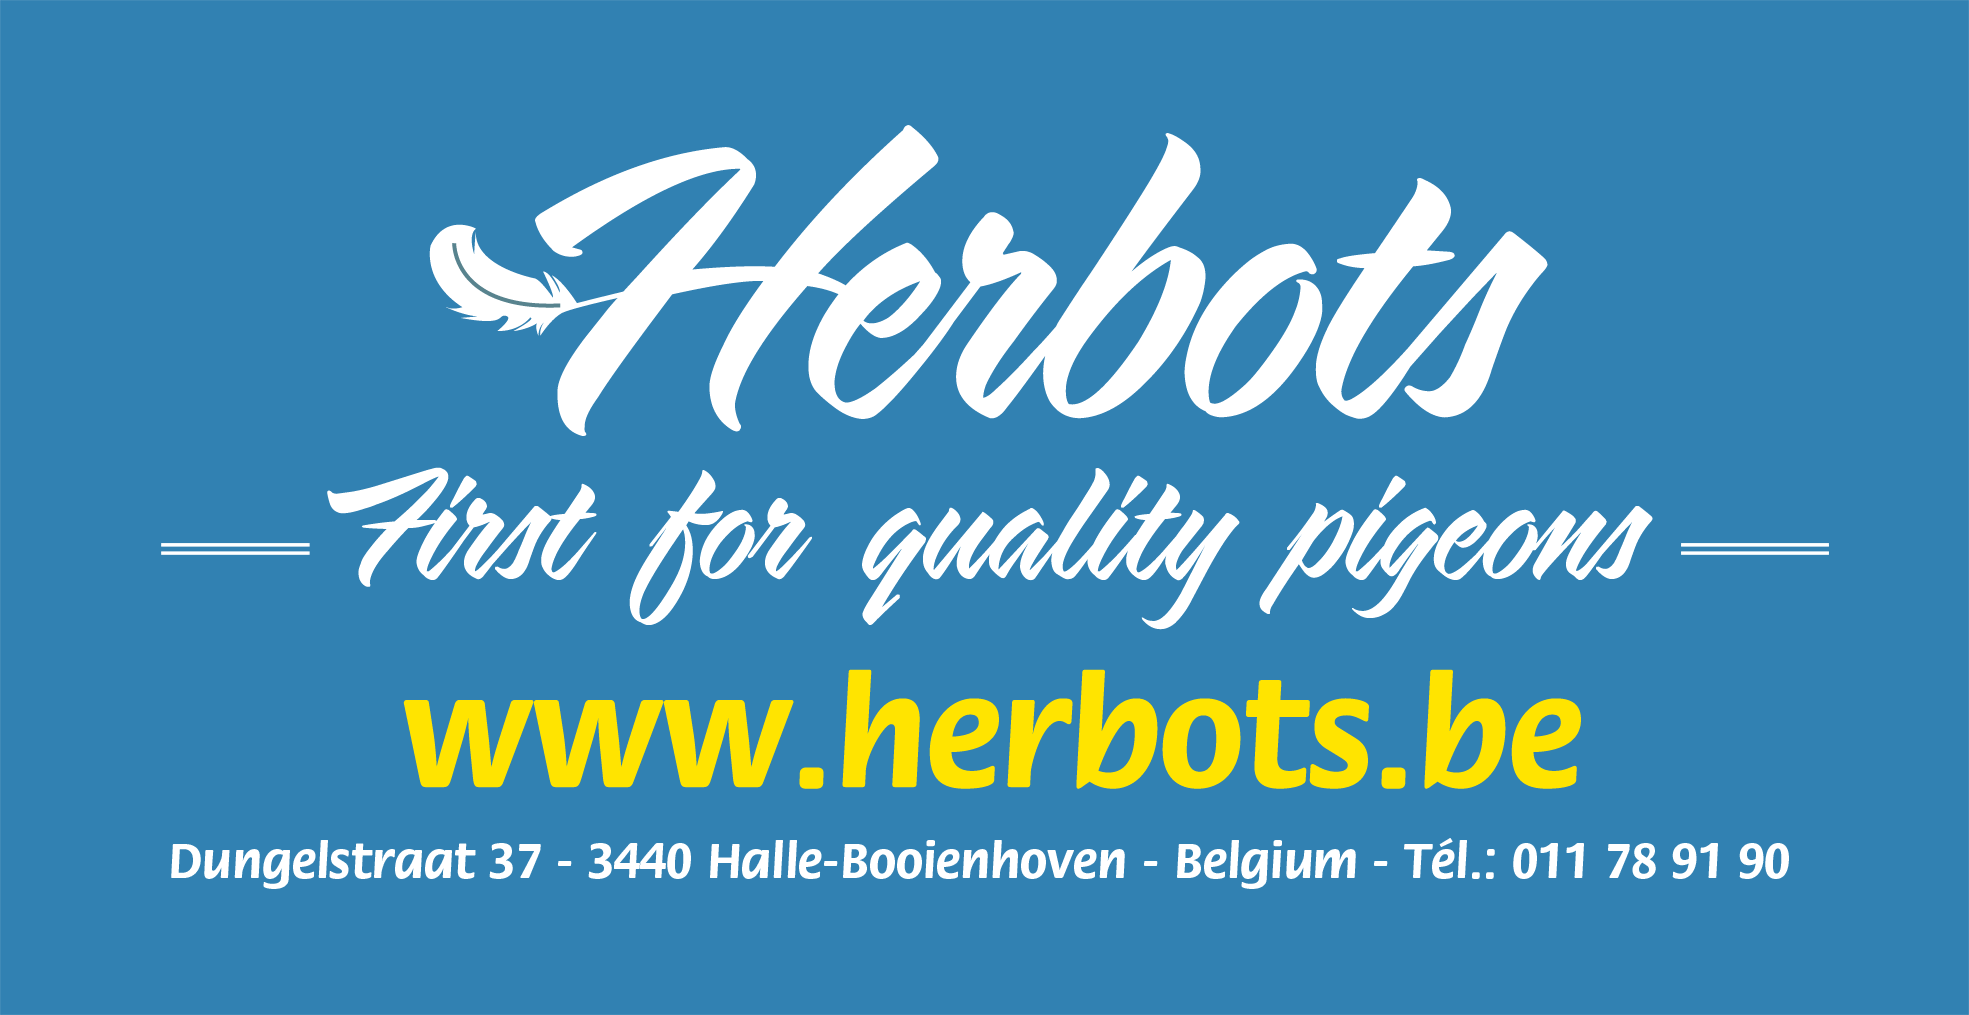 herbots IMEX